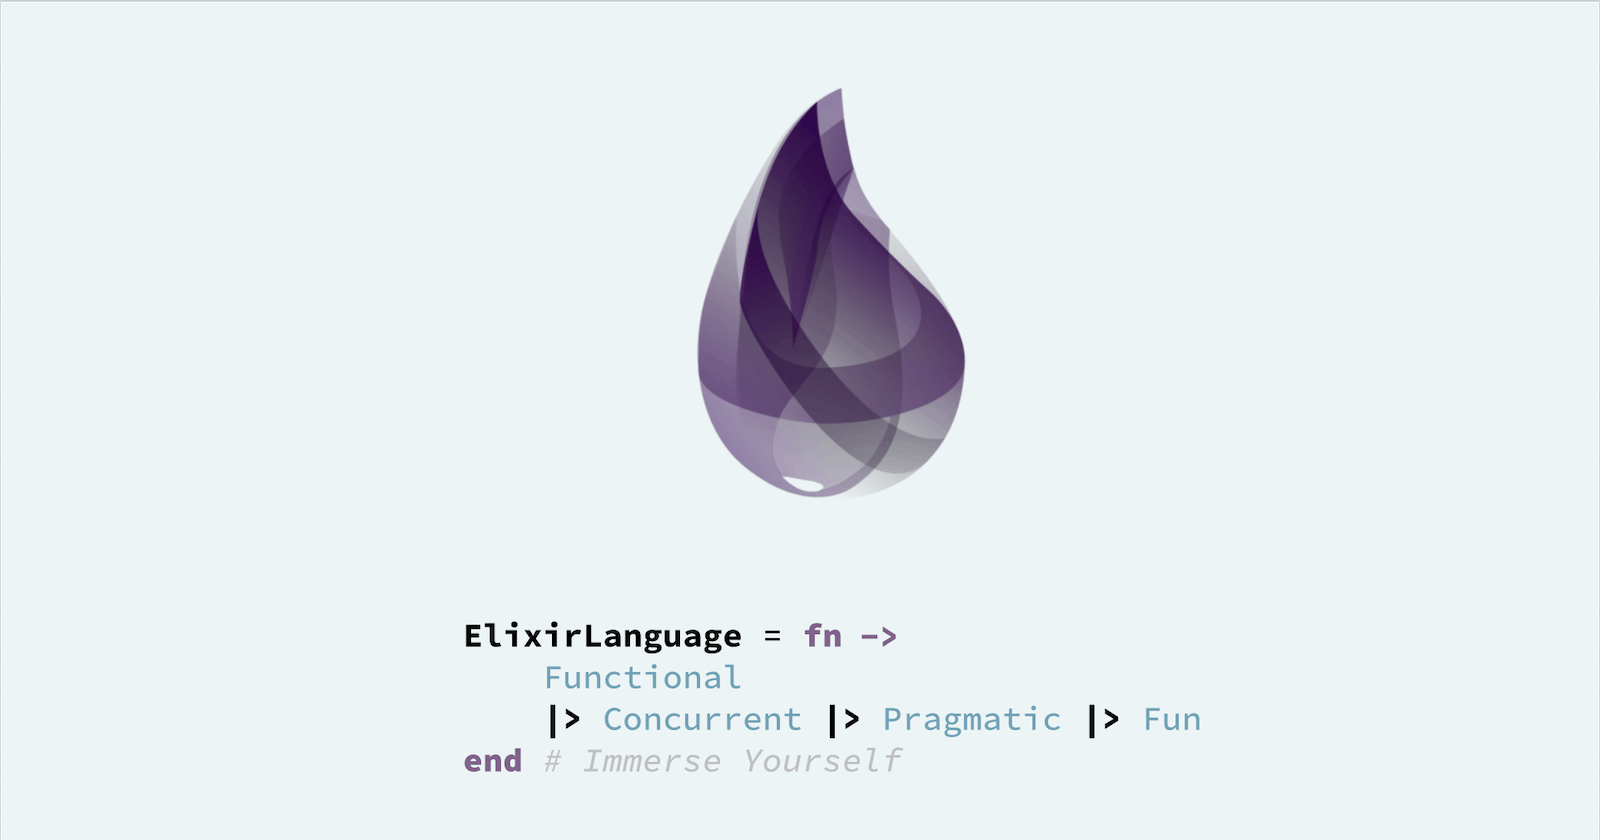 Attempt to Learn Elixir: The Introduction